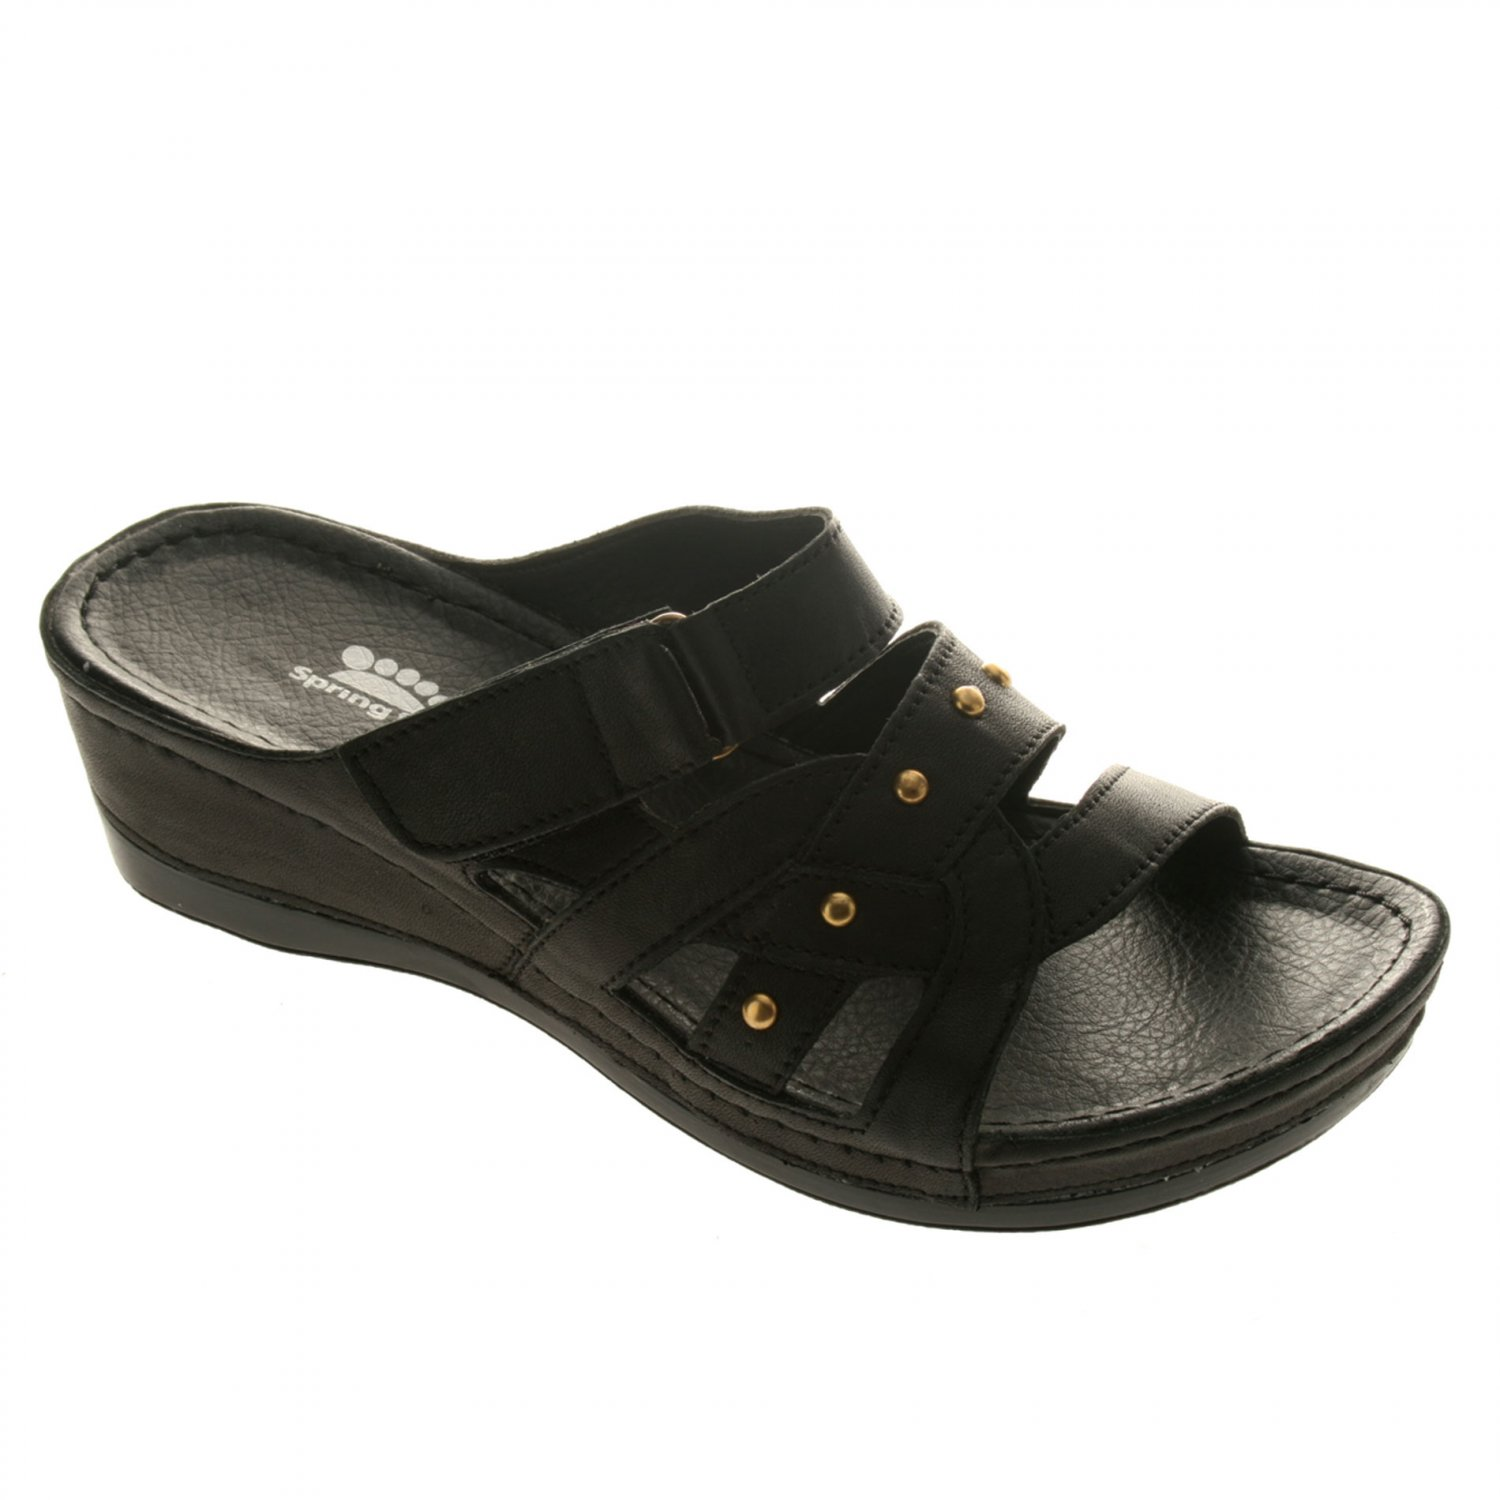 Spring Step ENLIGHTEN Sandals Shoes All Sizes & Colors